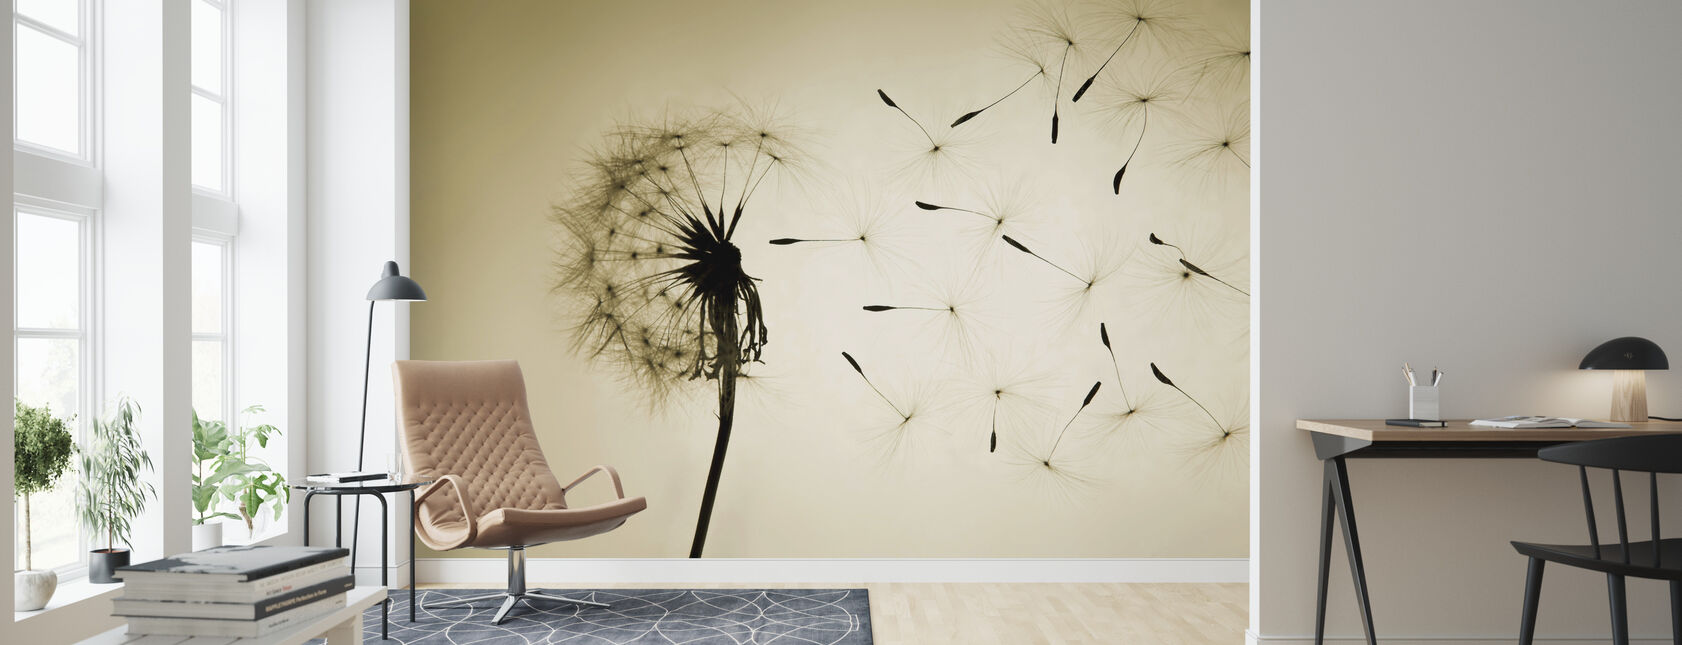 Dandelion - Wallpaper - Living Room